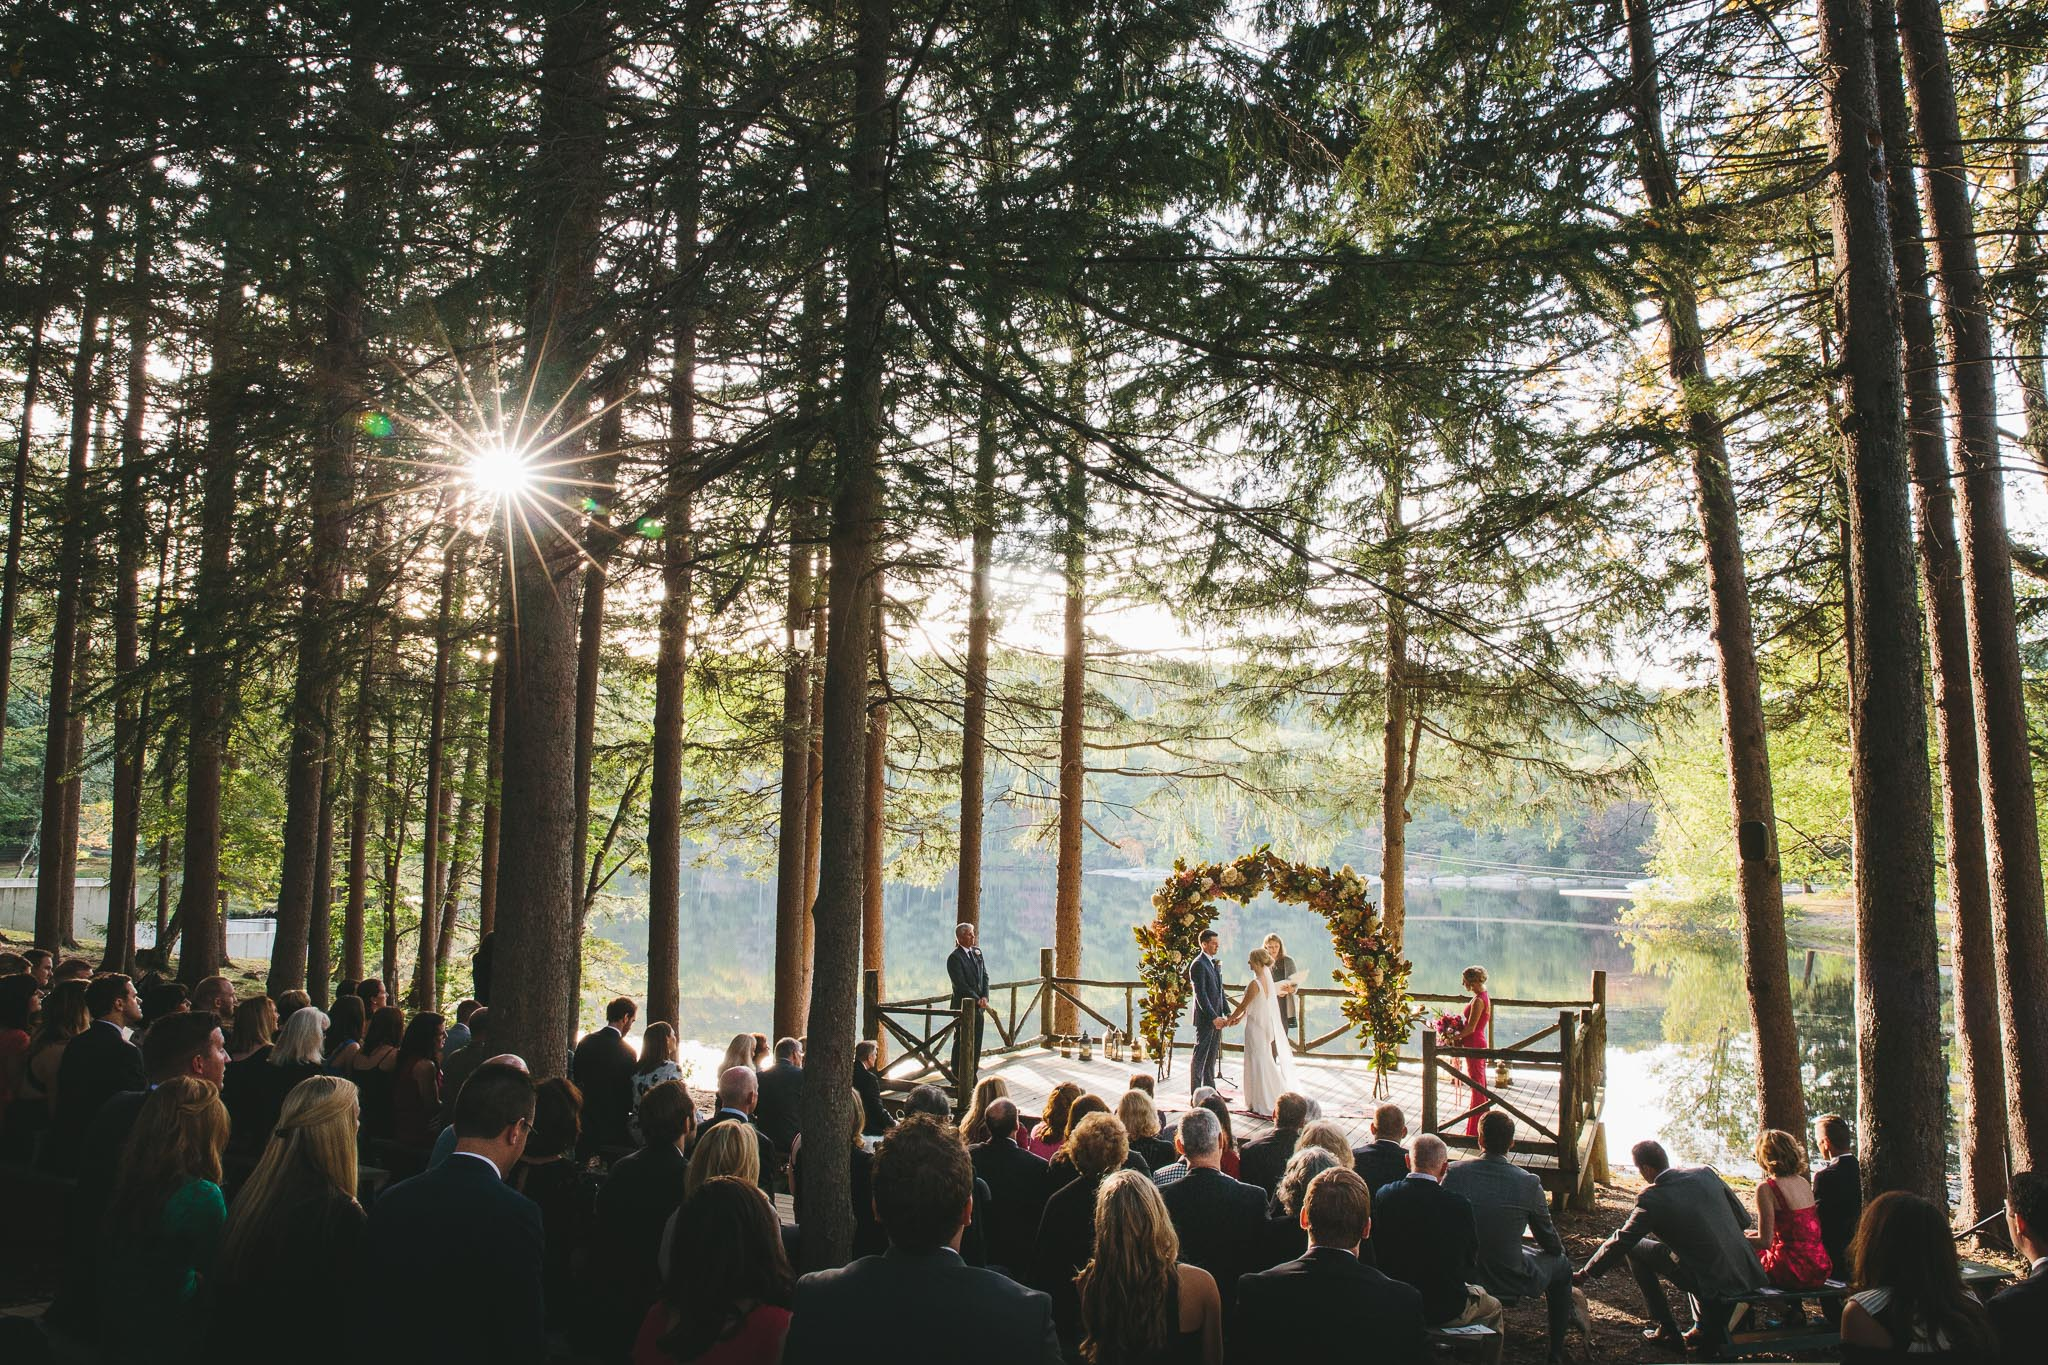 New York Wedding Photographers captured a bride and groom during their atmospheric ceremony at their Cedar Lakes Estate Wedding